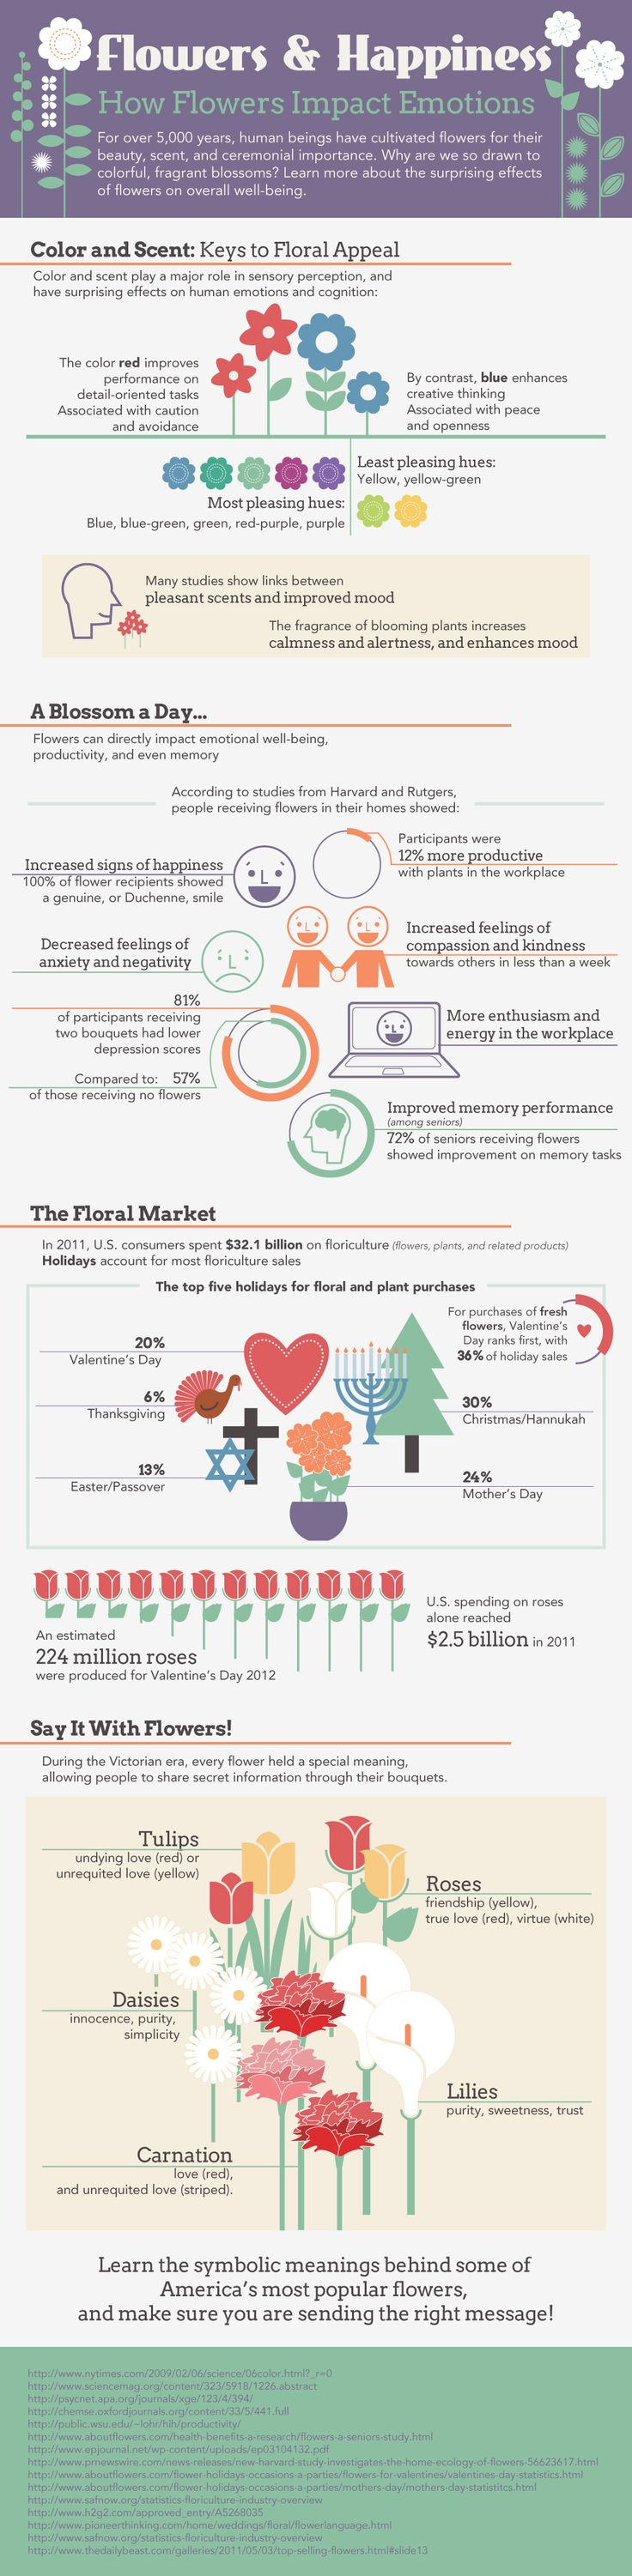 824 best theme images on pinterest exposure photography acne skin add this infographic to your siteflowers and happiness how flowers impact emotions the reason fandeluxe Images